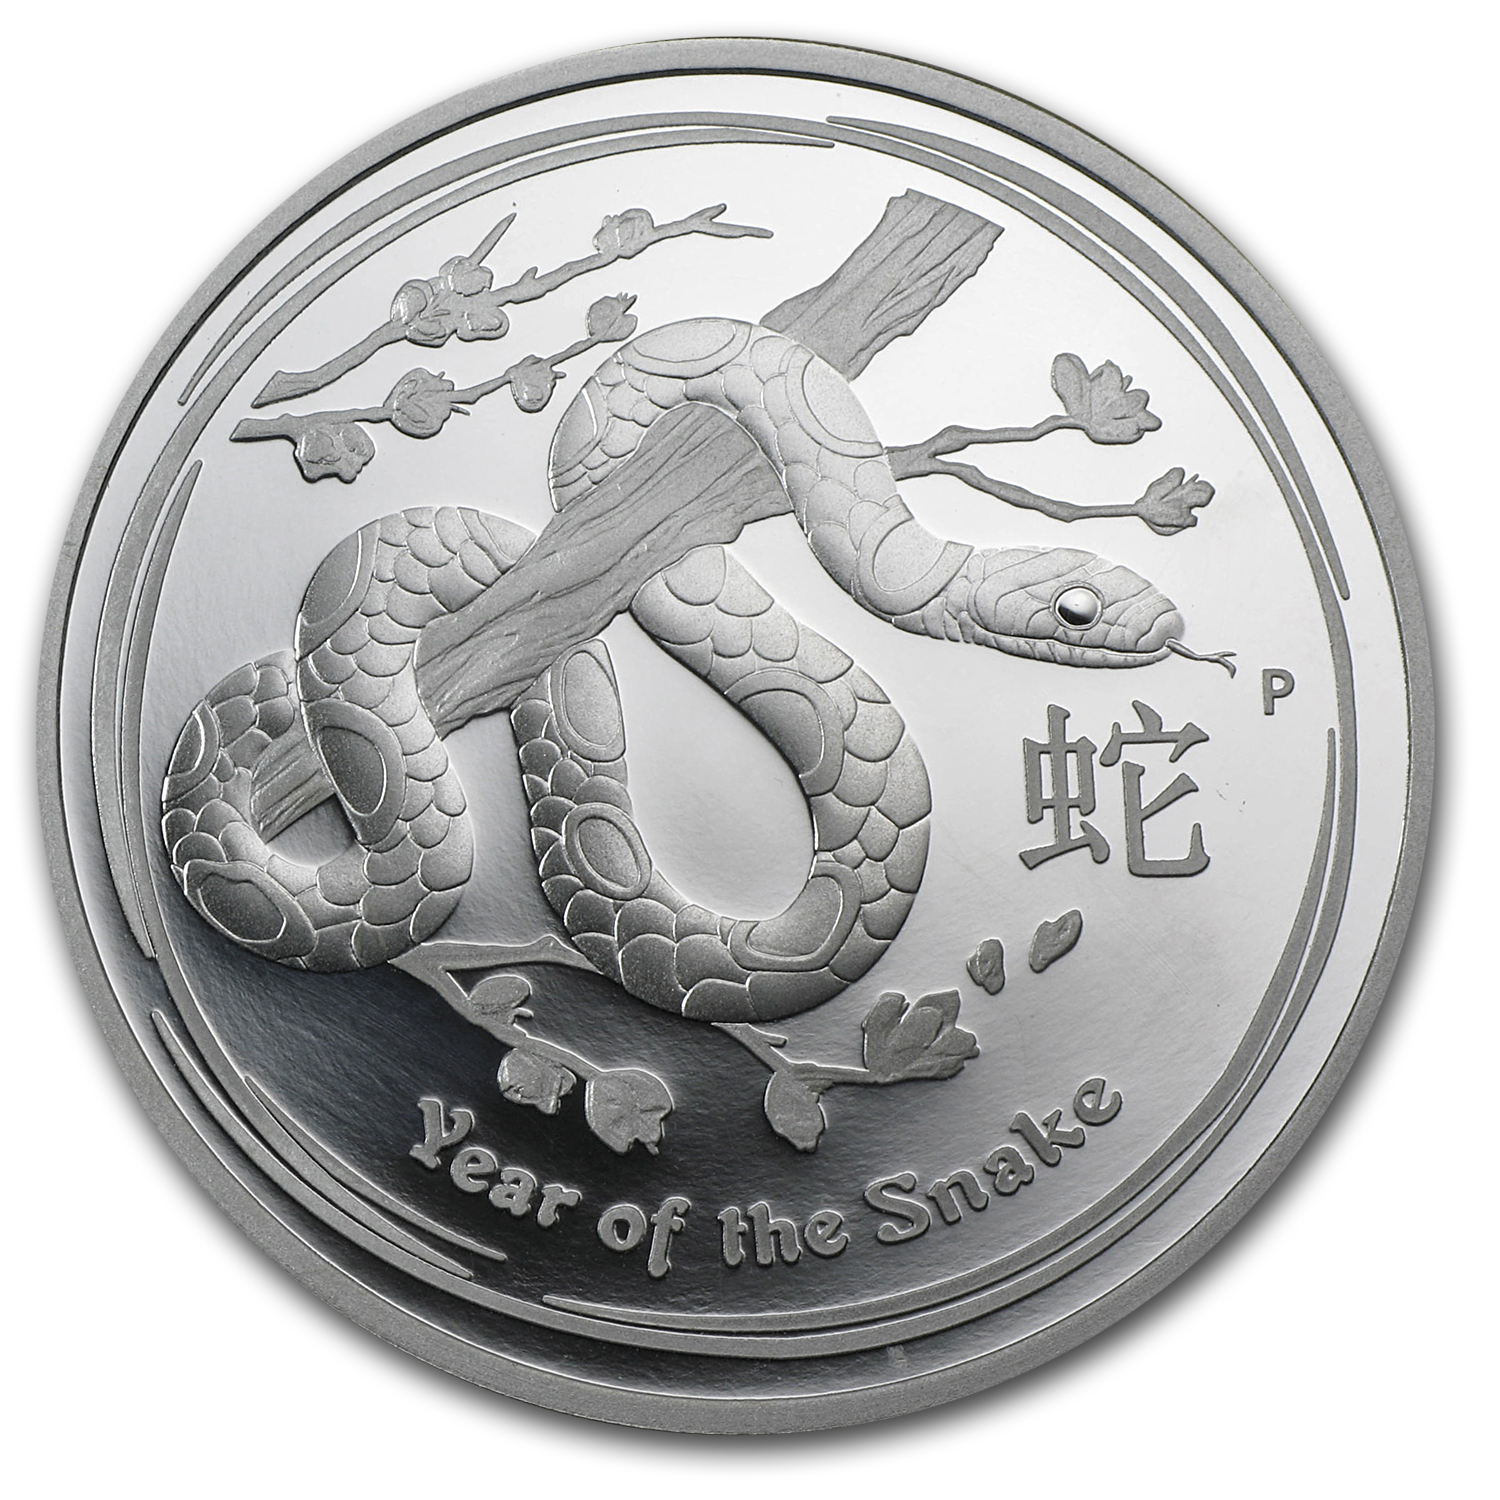 2013 1 oz Silver Australian Year of the Snake Proof